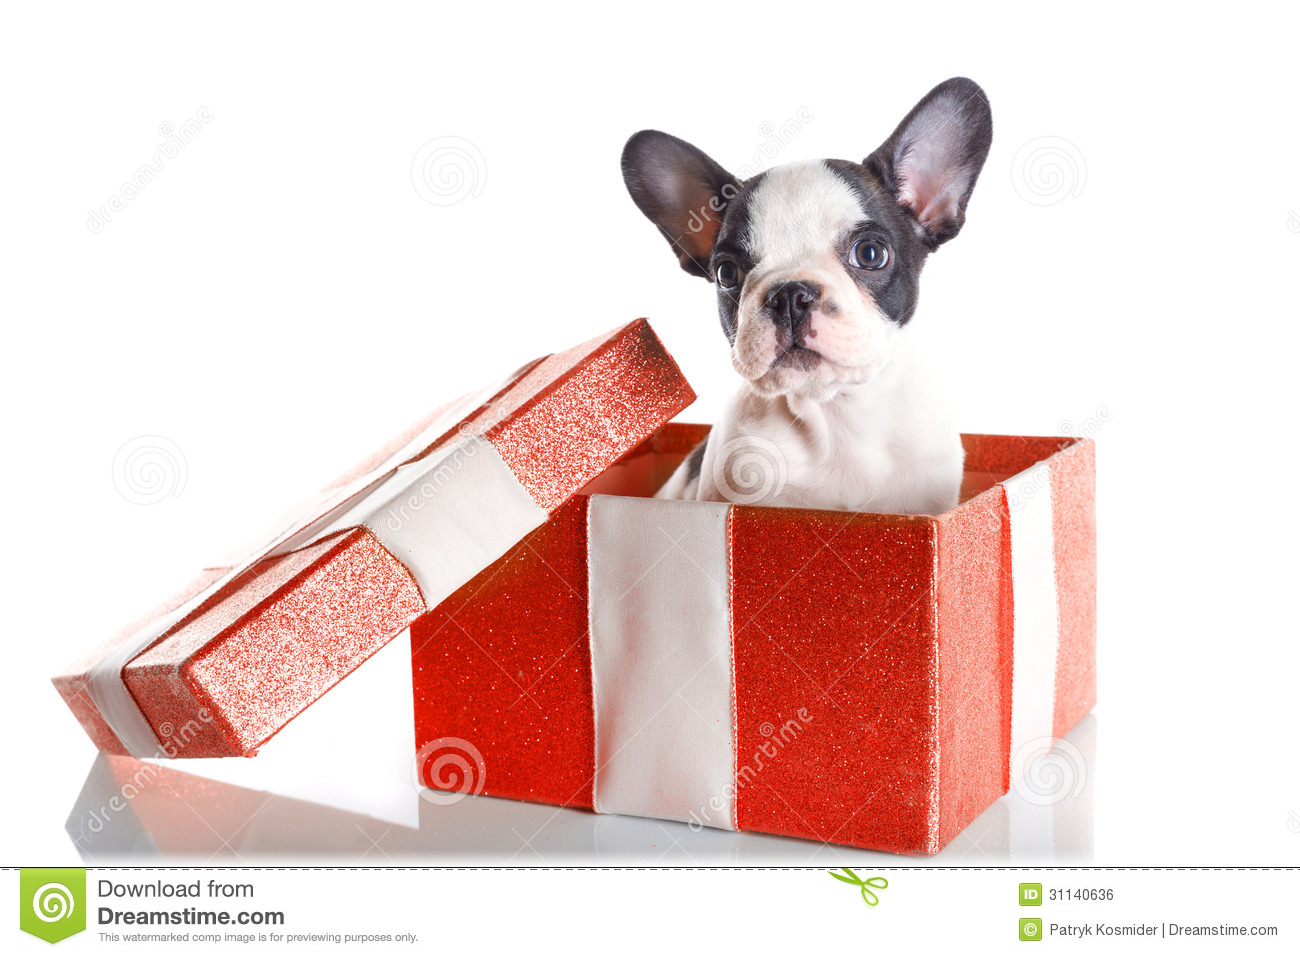 Adorable French Bulldog Puppy In The Gift Box Stock Photo - Image ...